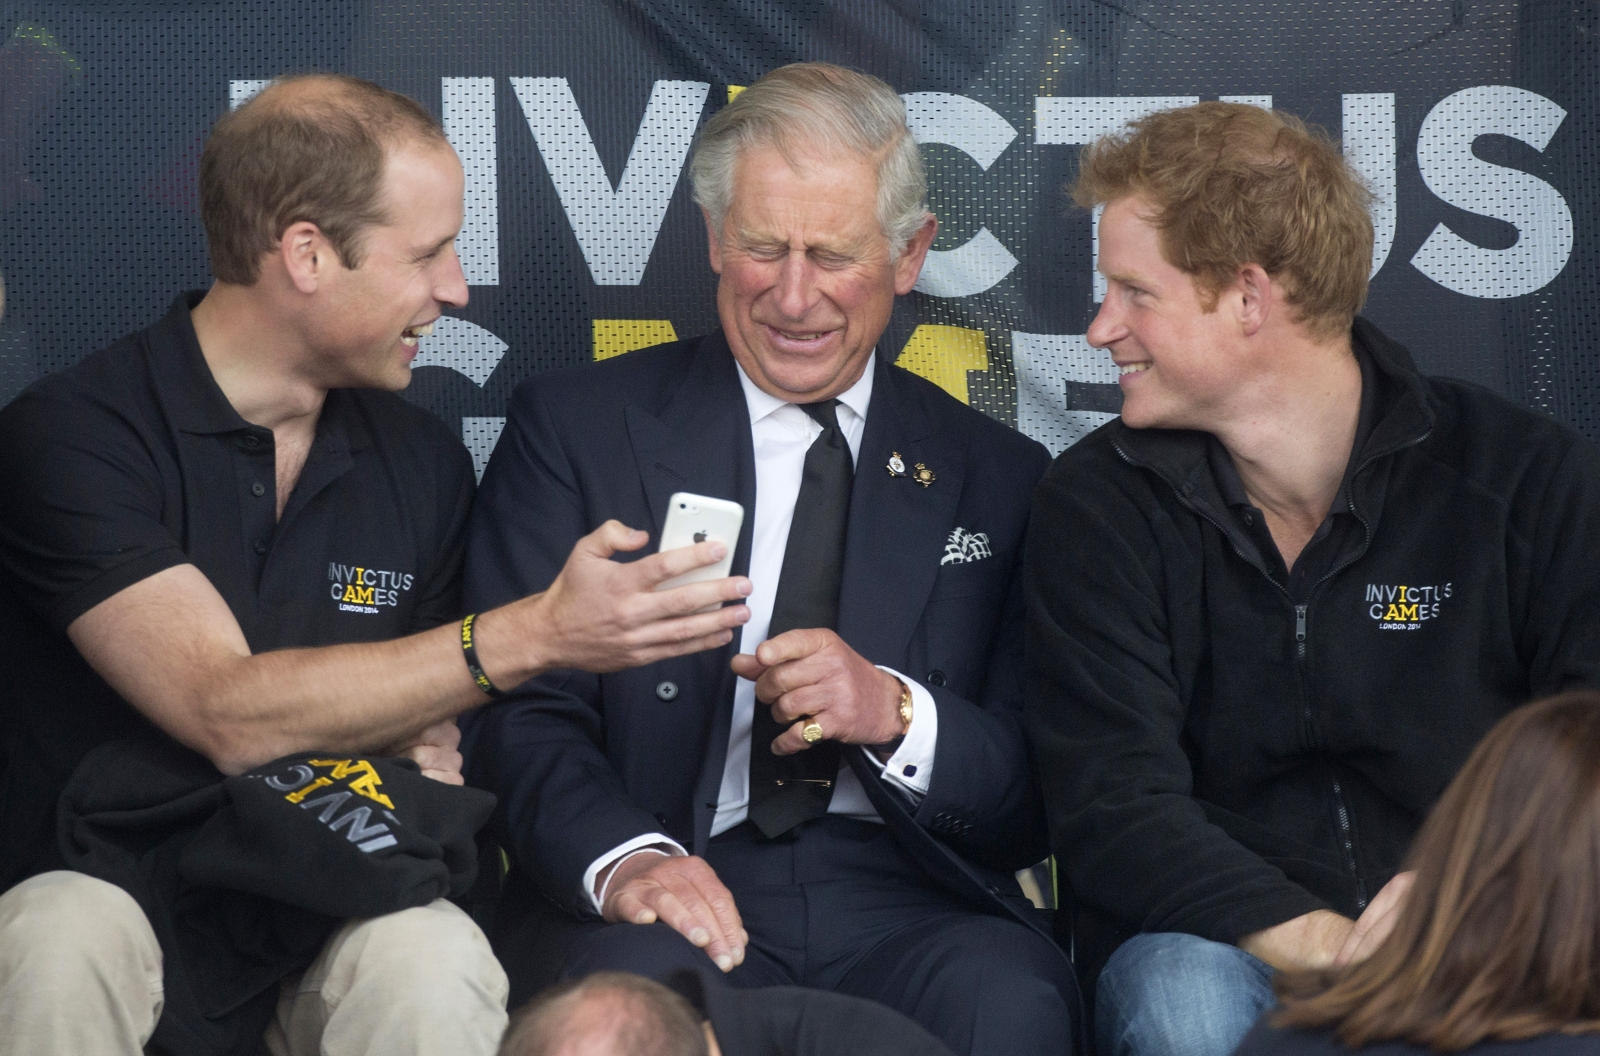 Prince William, Charles, Harry at the Invictus Games